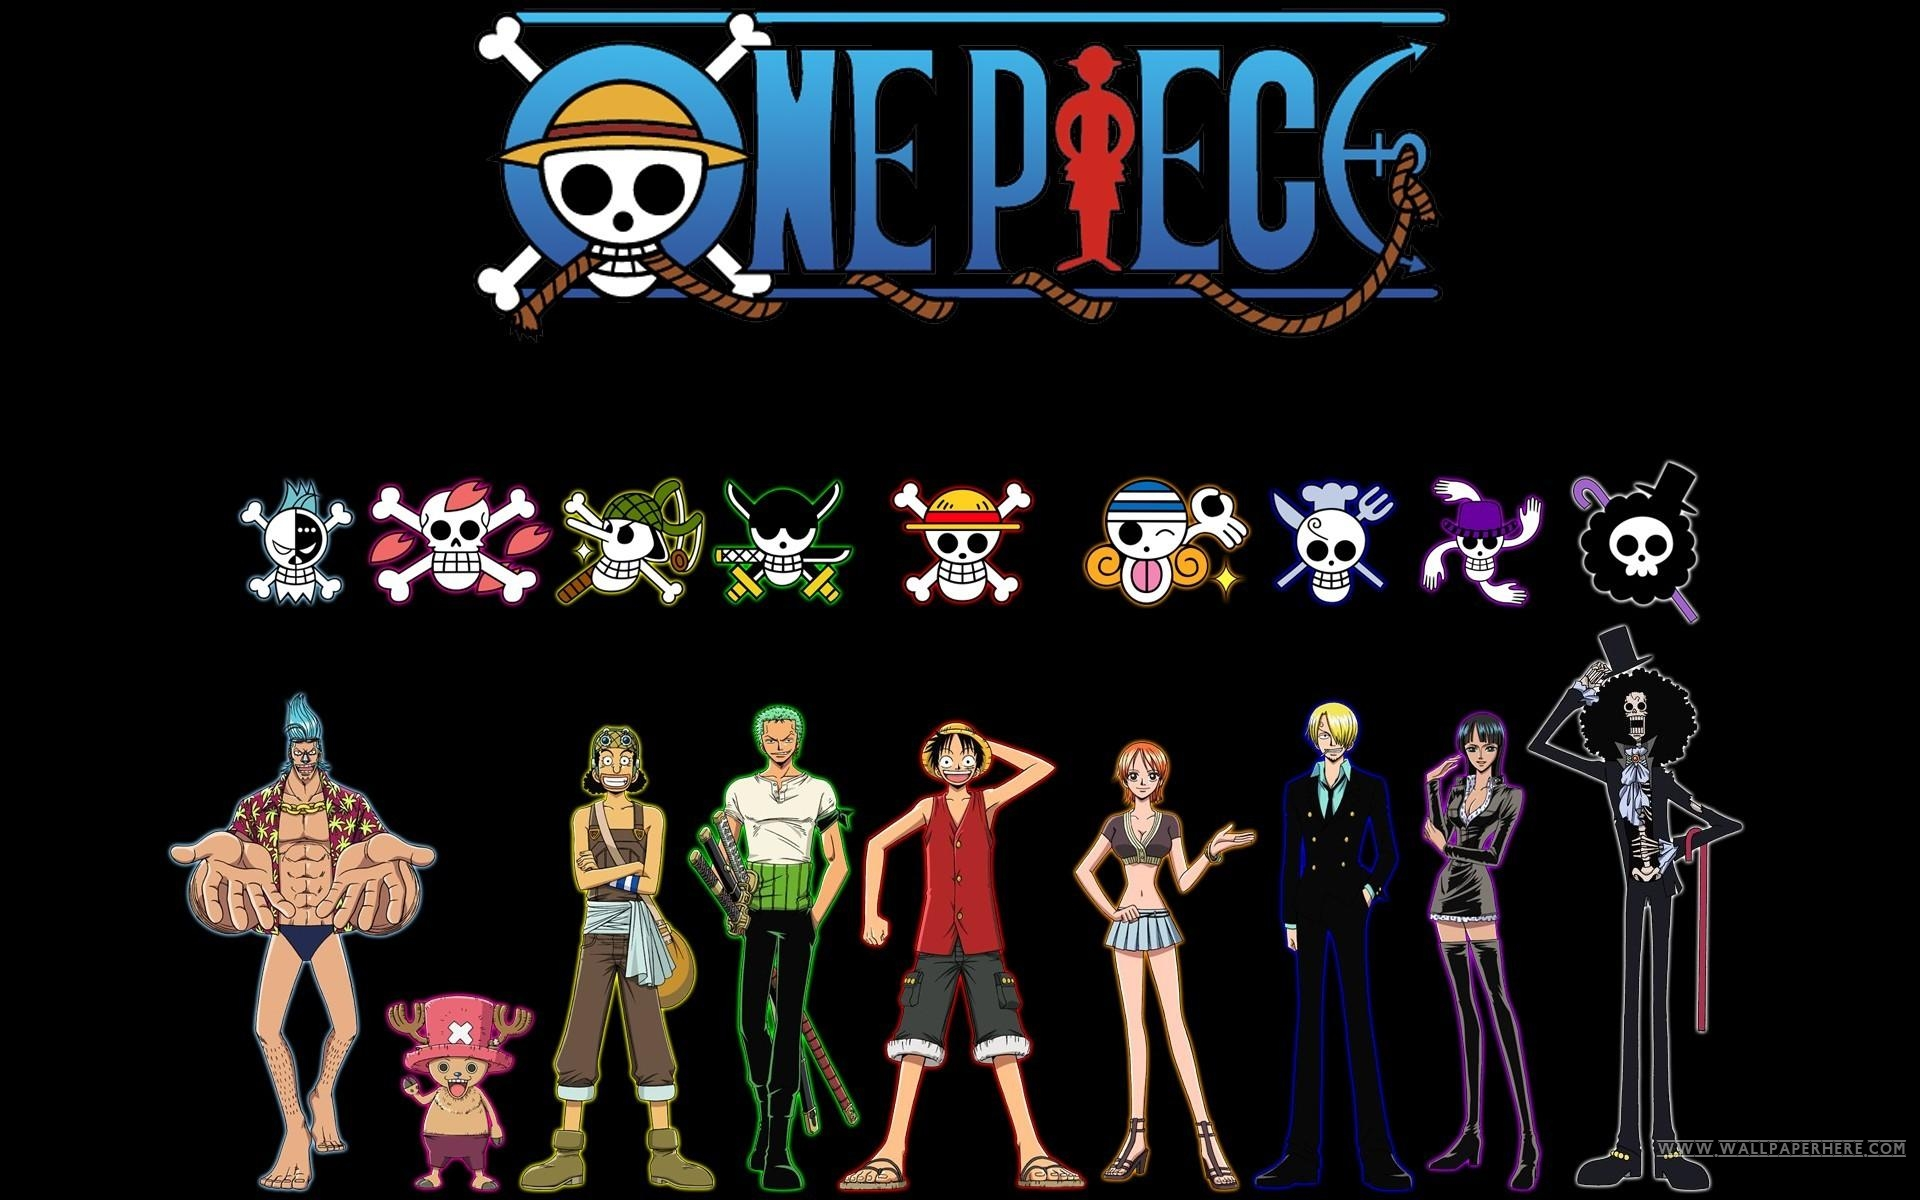 One Piece Hd Wallpapers For Mobile Pc Iphone Free Download